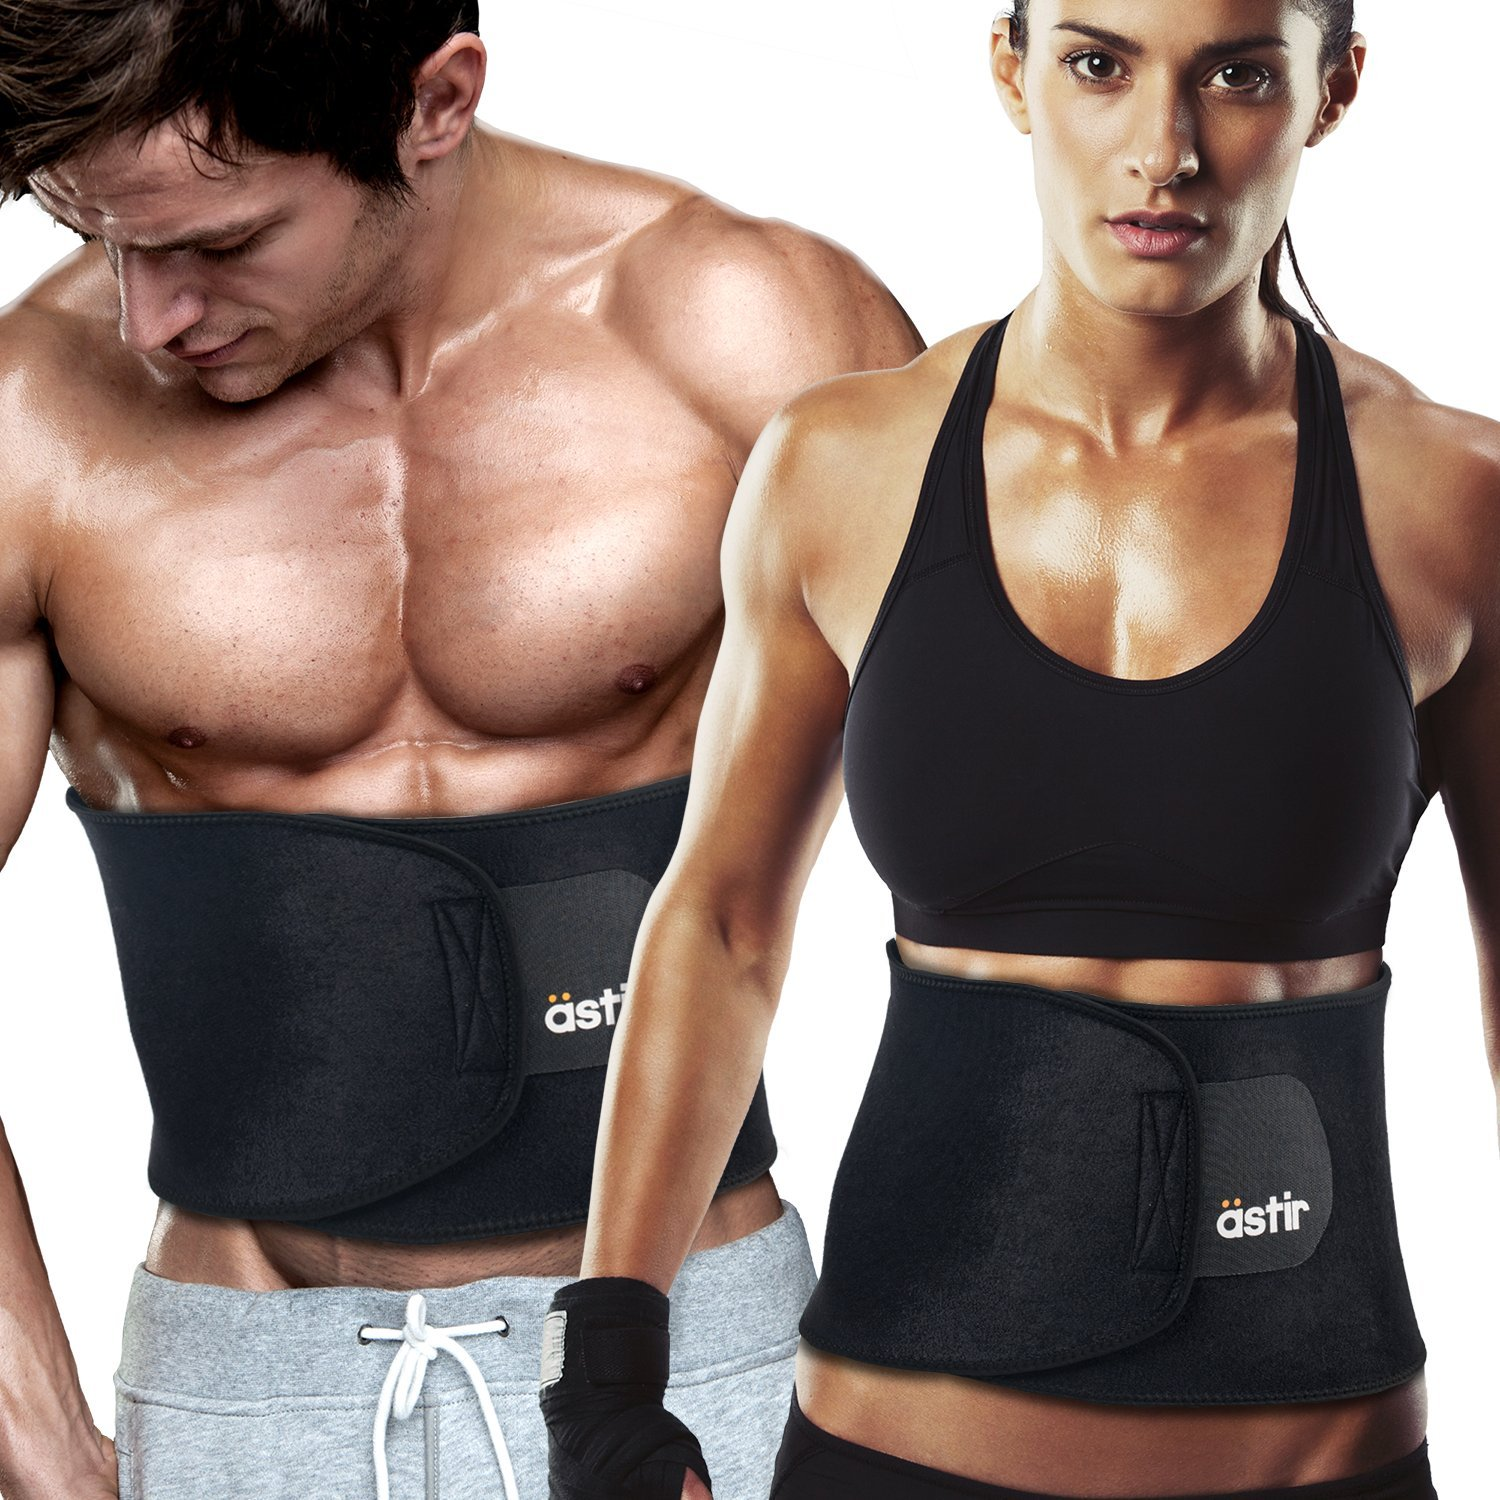 """Astir Waist Trimmer Ab Belt For Women & Men•Extra Long (44""""), Extra Wide (9""""), & Extra Flexible Sweat Belt with Maximum Abdominal Coverage•Non-Slip Surface for Max Waist Slimming•Lifetime Guarantee by Astir"""